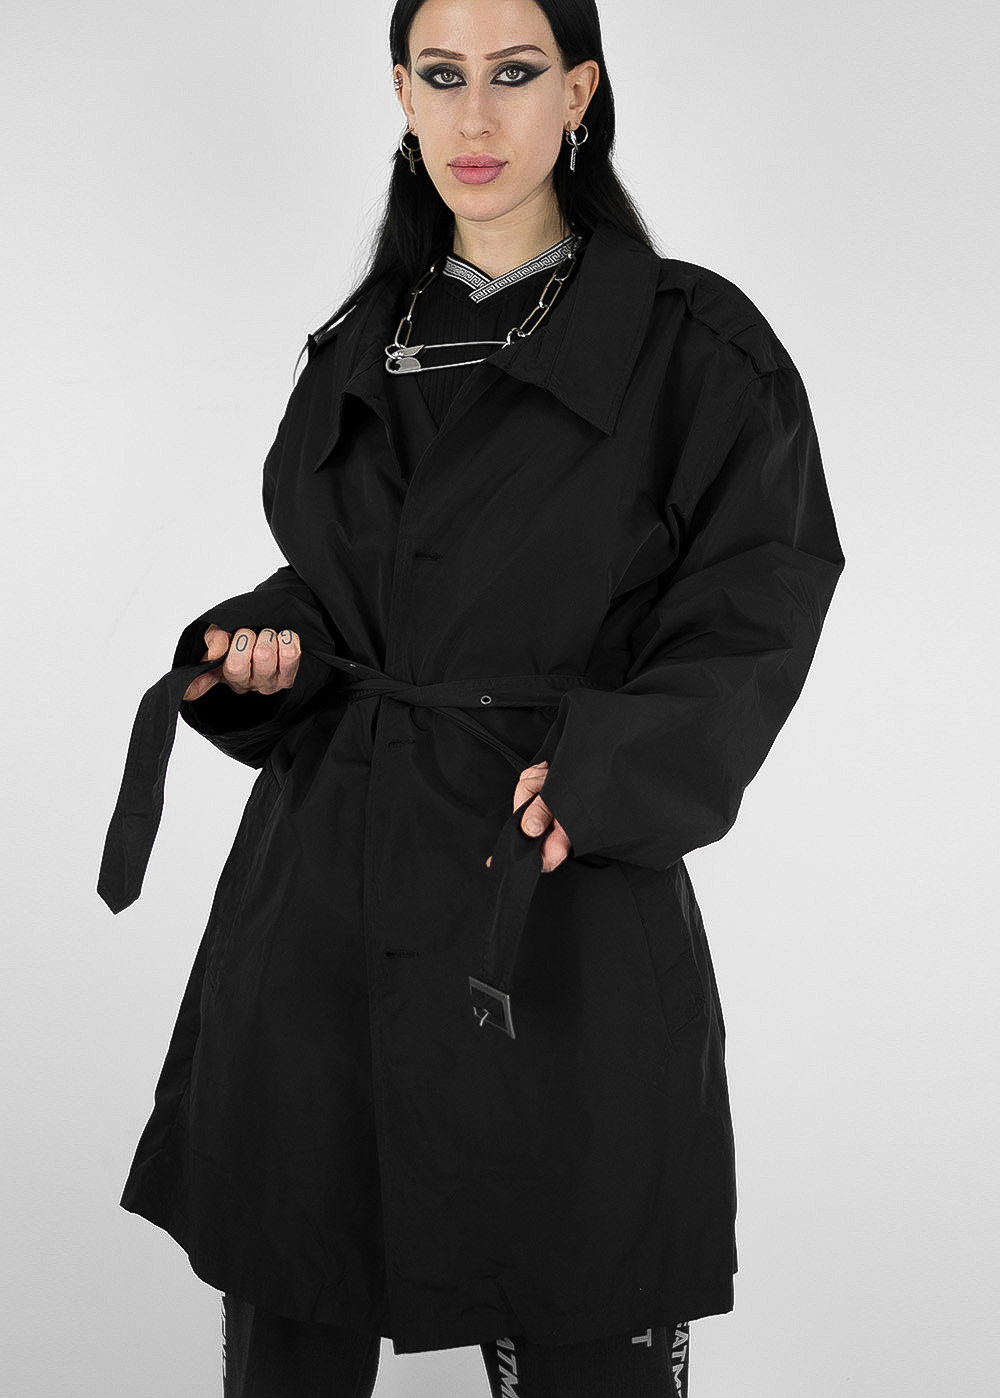 Black Trenchcoat 27